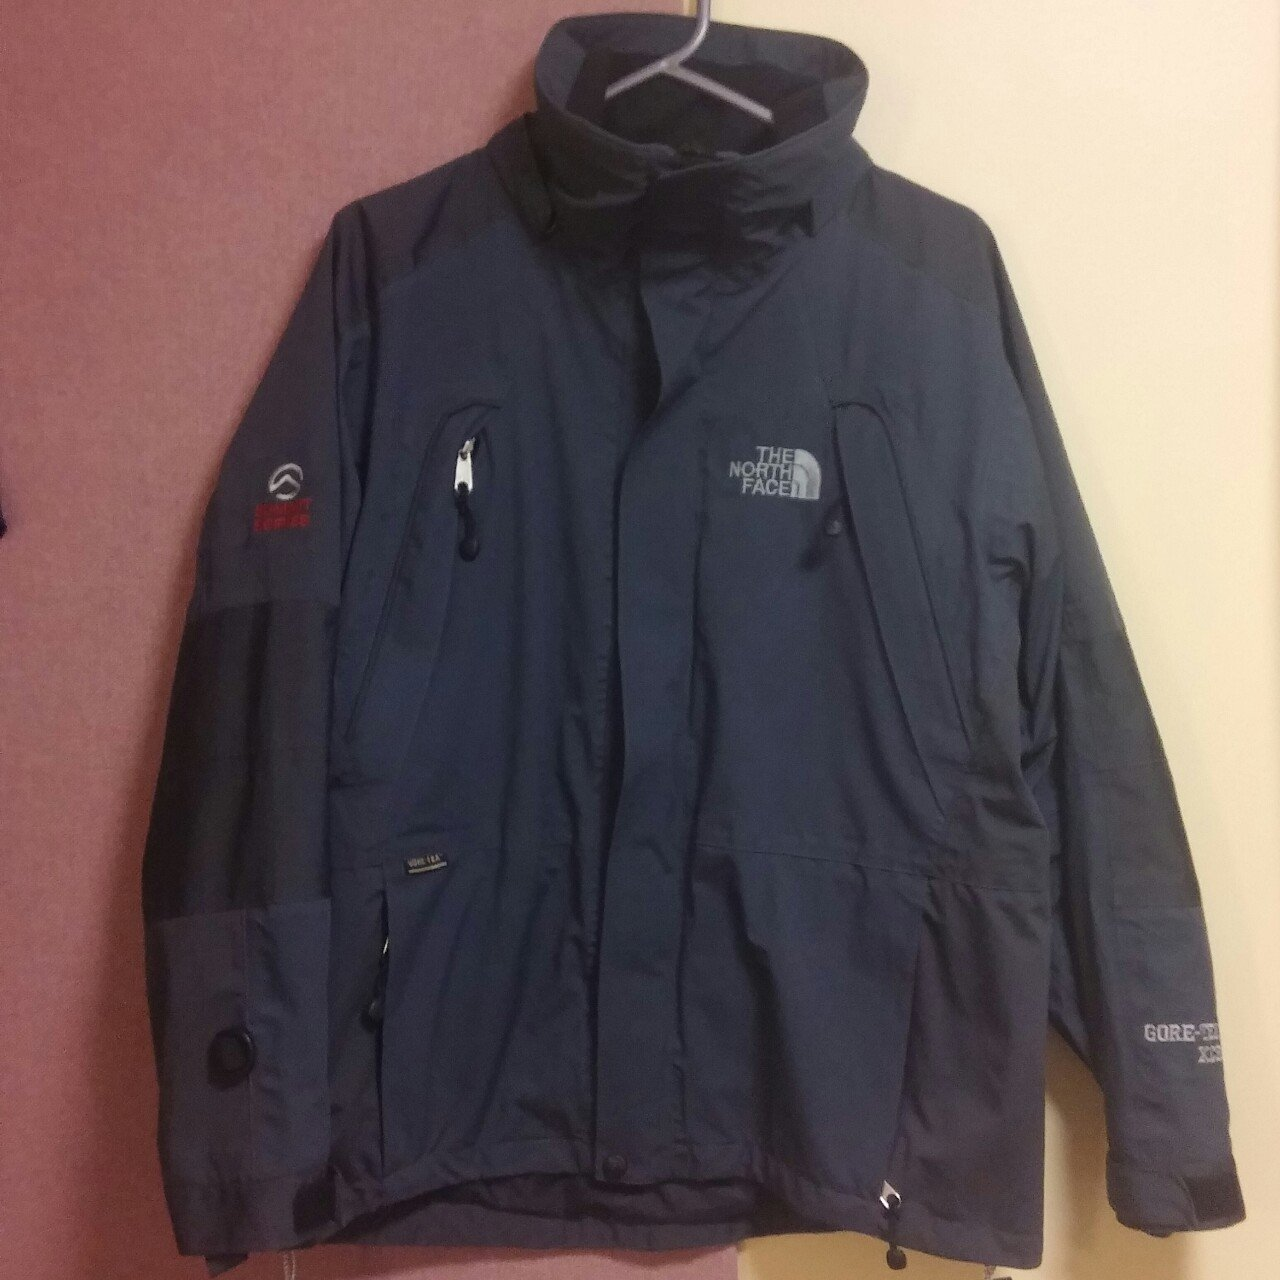 ... cheap vintage the north face summit series gore tex xcr jacket. depop  3dd4a bb70c 288bf4ded